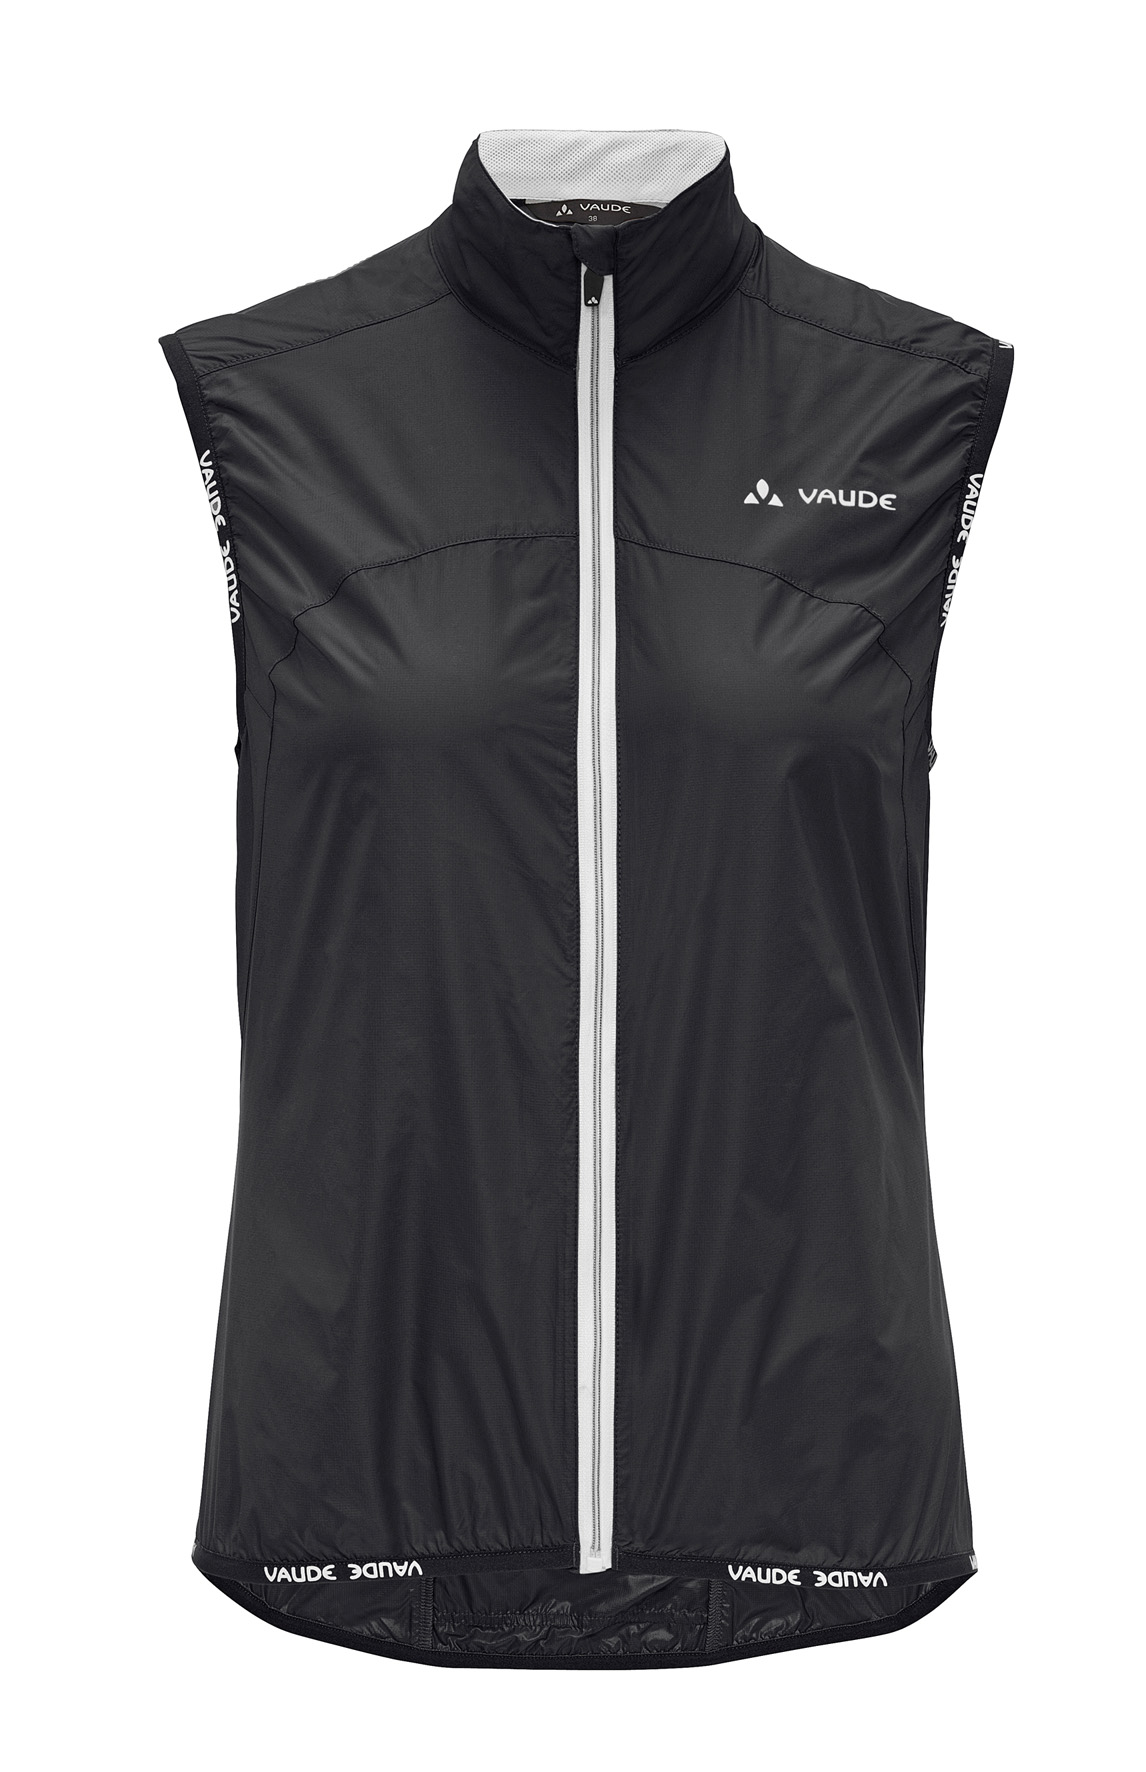 VAUDE Women´s Air Vest II black Größe 40 - VAUDE Women´s Air Vest II black Größe 40